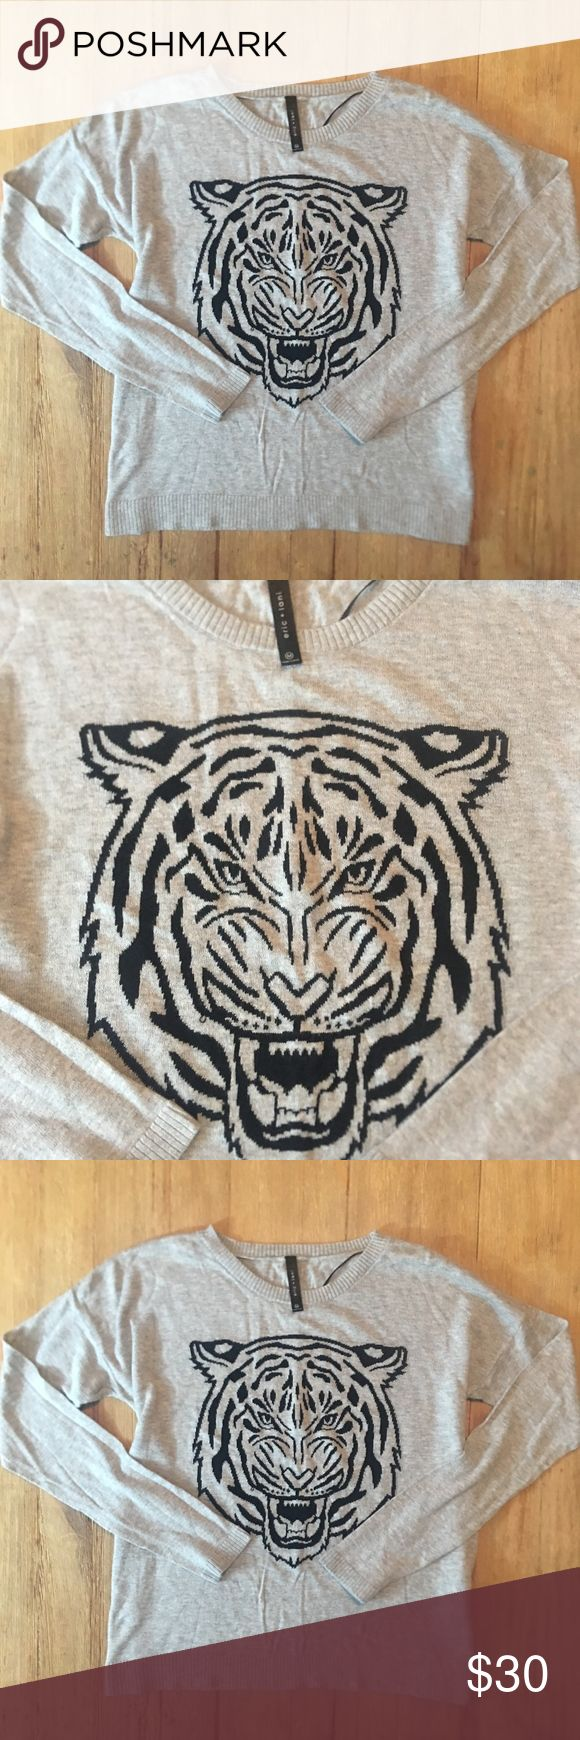 """Eric & Lani tiger sweater.   Fierce! Eric & Lani tiger sweater.   Perfect condition.     Length is approx. 21"""" and chest is approx. 17"""" across laying flat. Eric & Lani Sweaters"""